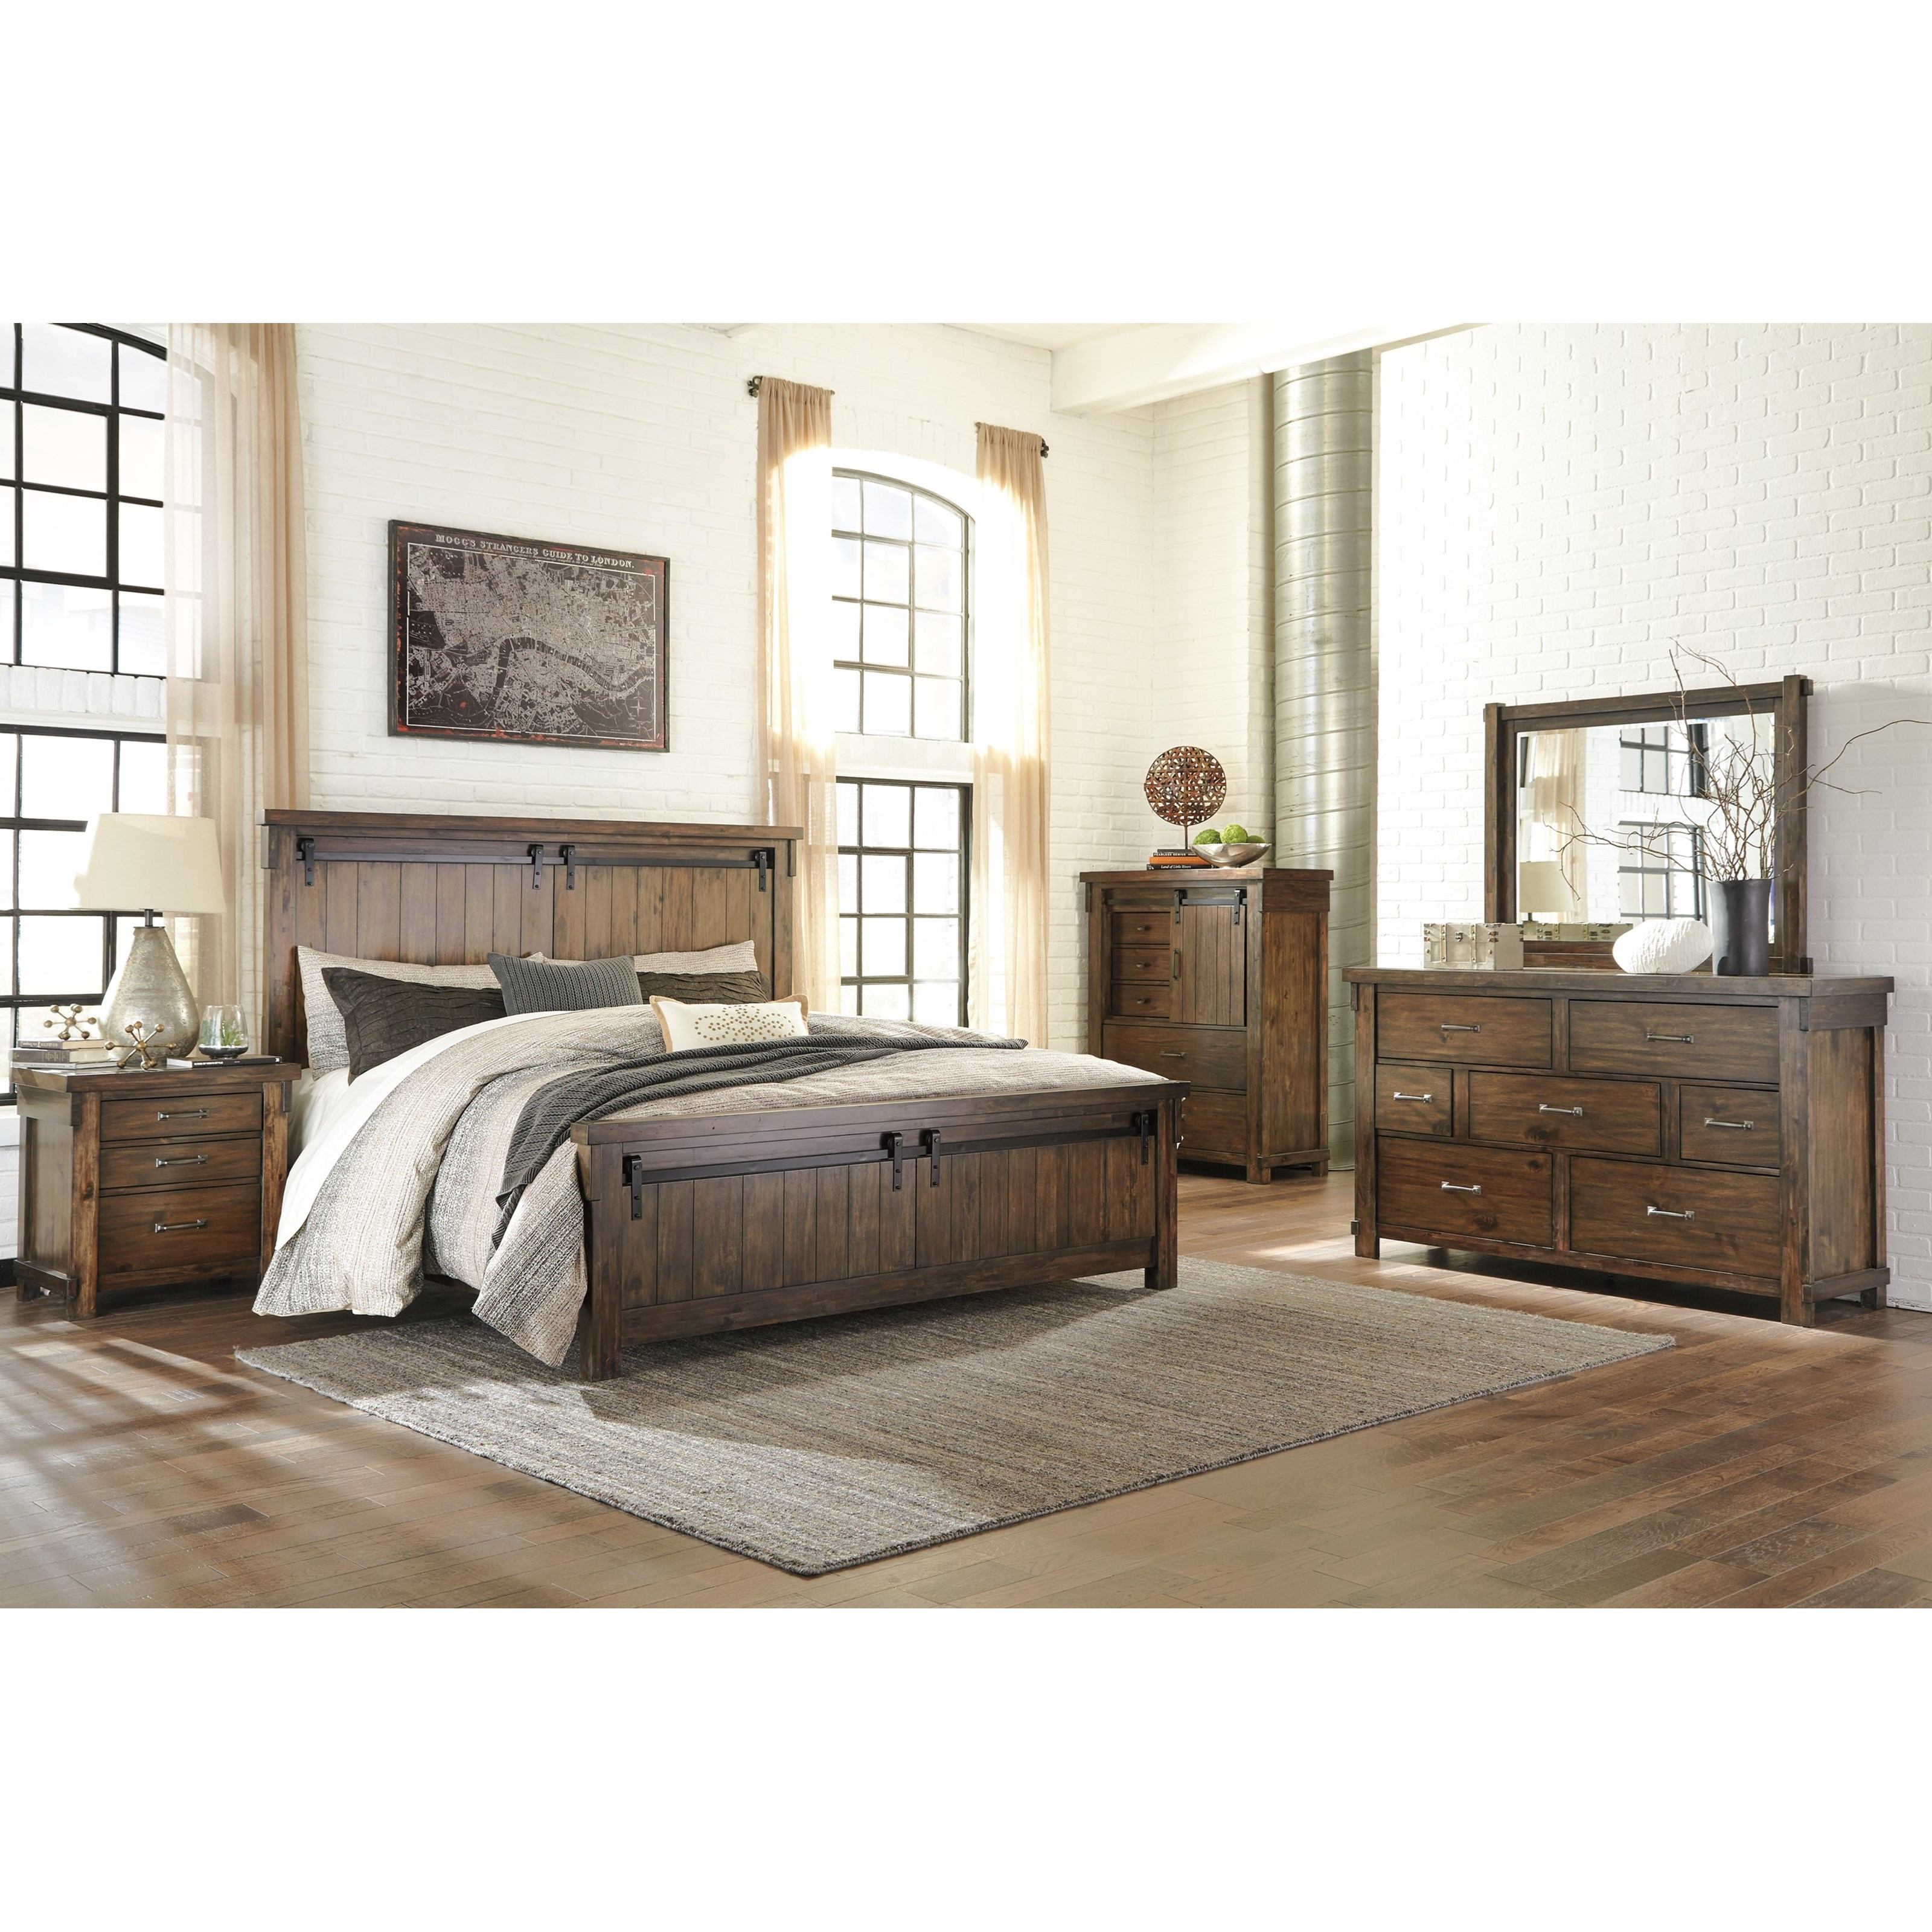 Signature Design By Ashley Lakeleigh King Panel Bed With